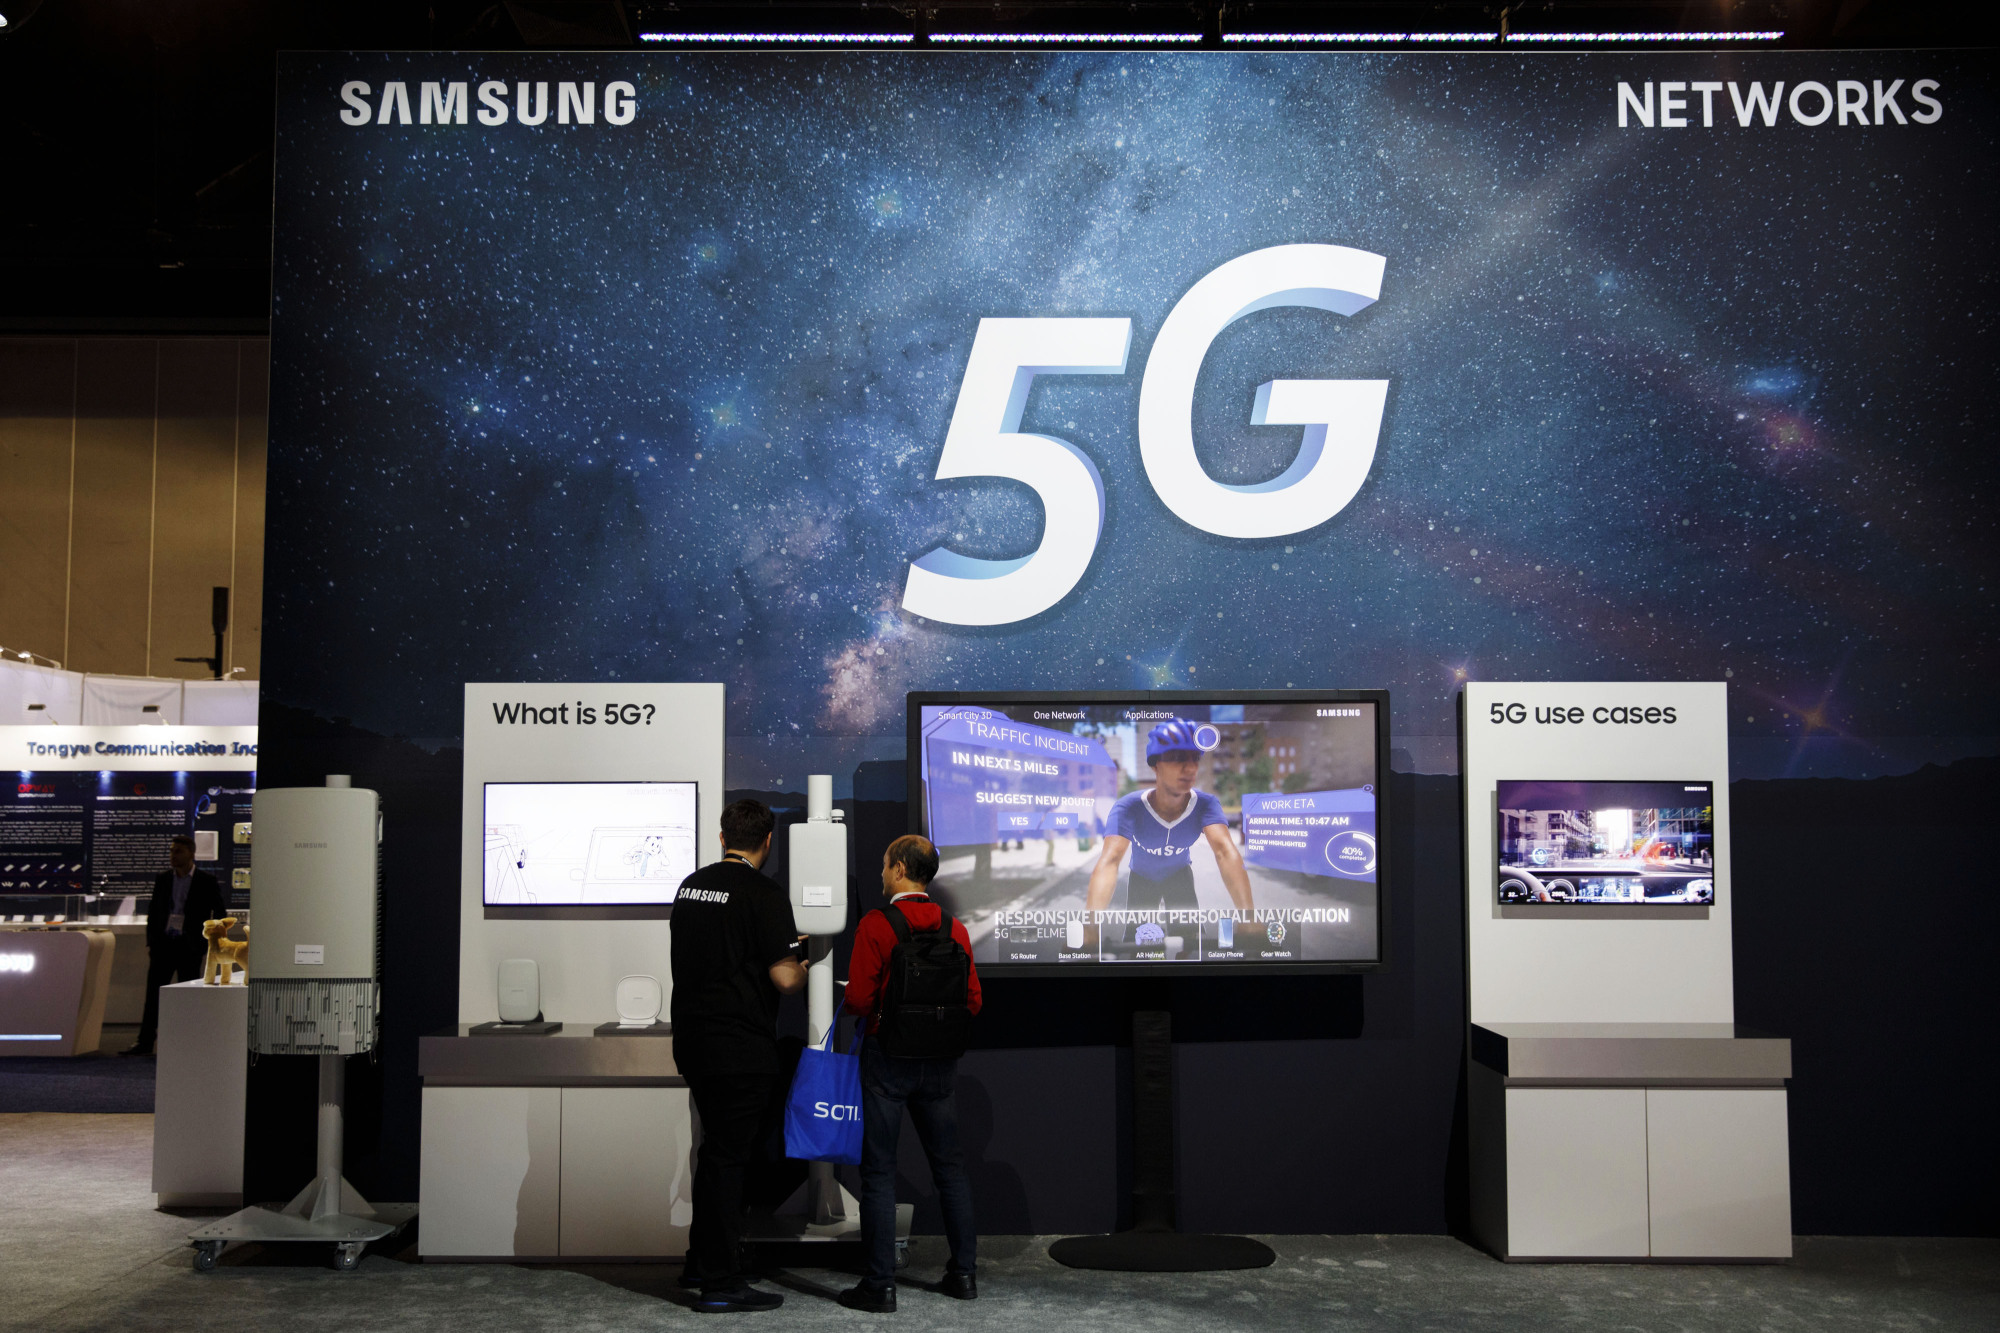 Samsung Electronics Co. touts fifth-generation mobile communications at the Mobile World Congress Americas event in Los Angeles in September. Sources say NEC Corp. will tie up with the South Korean firm on developing 5G solutions.   BLOOMBERG